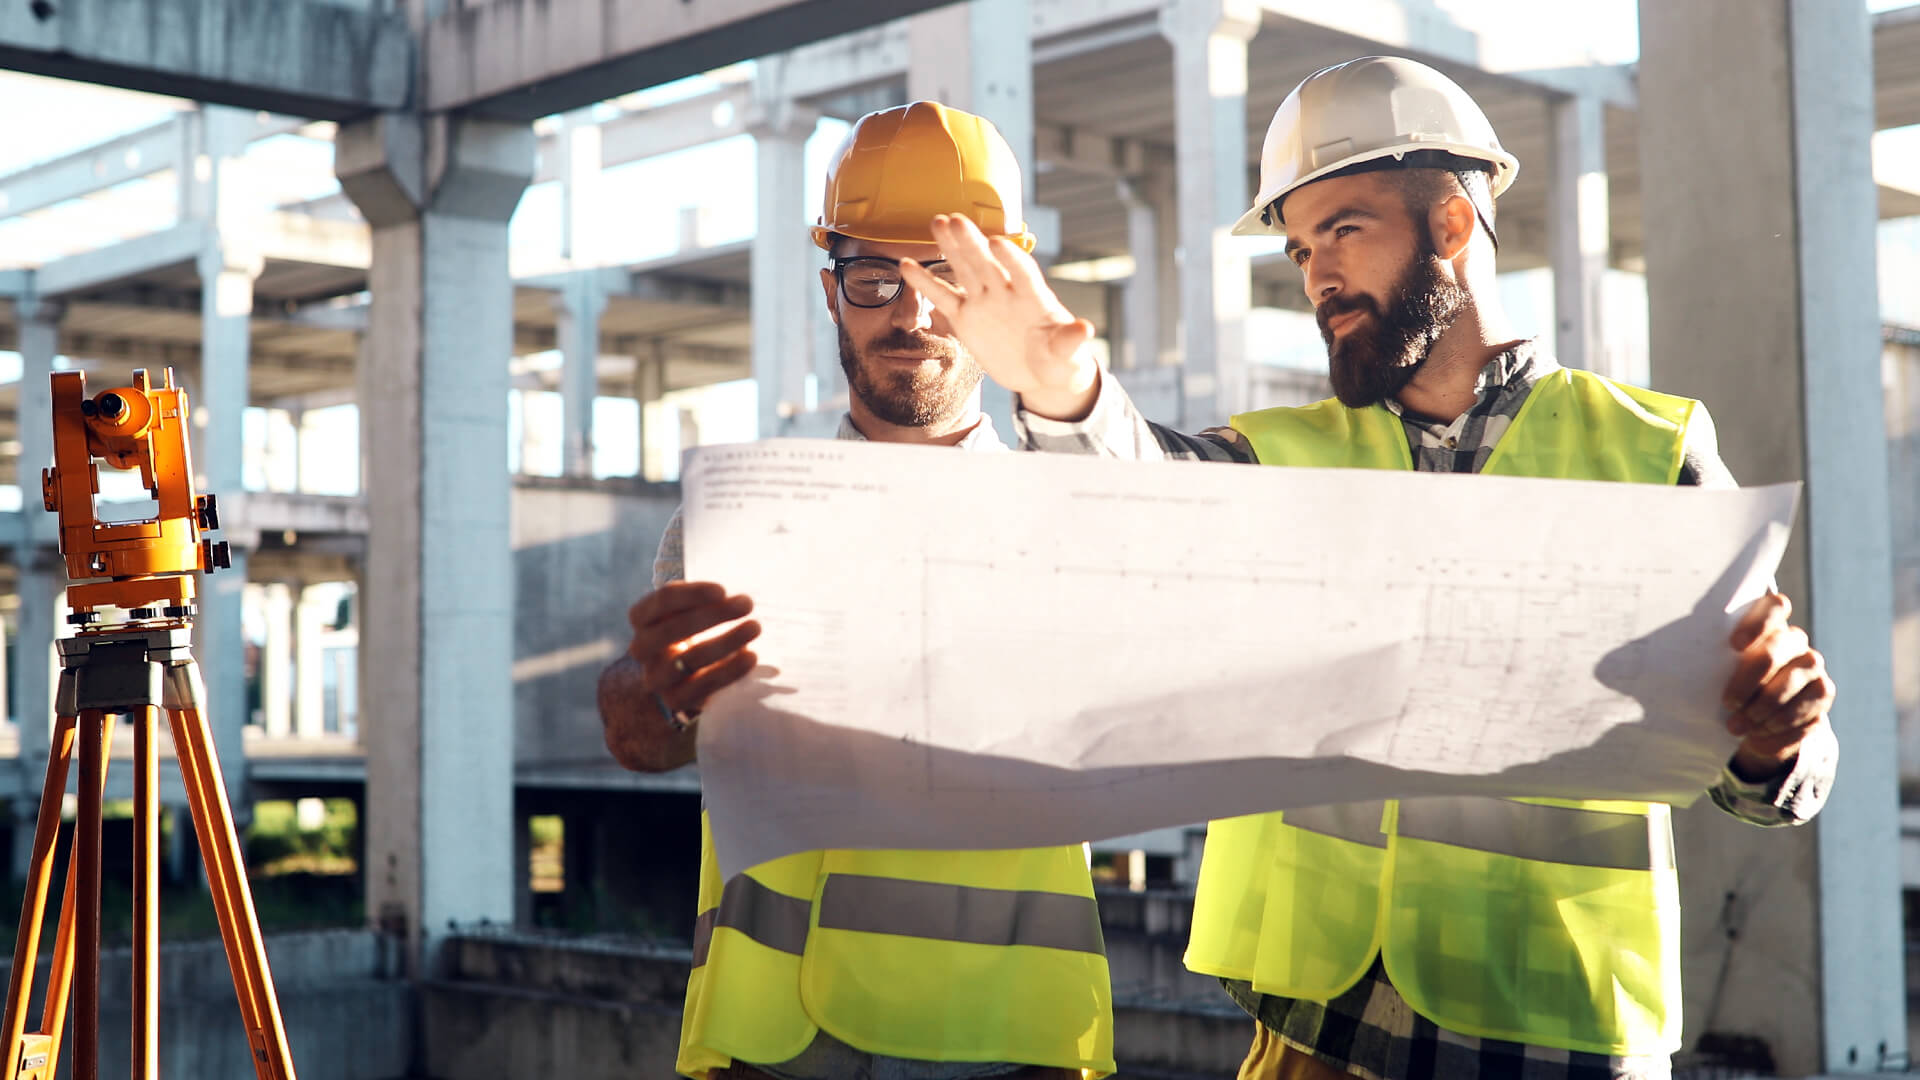 Two men discussing plans at a construction site